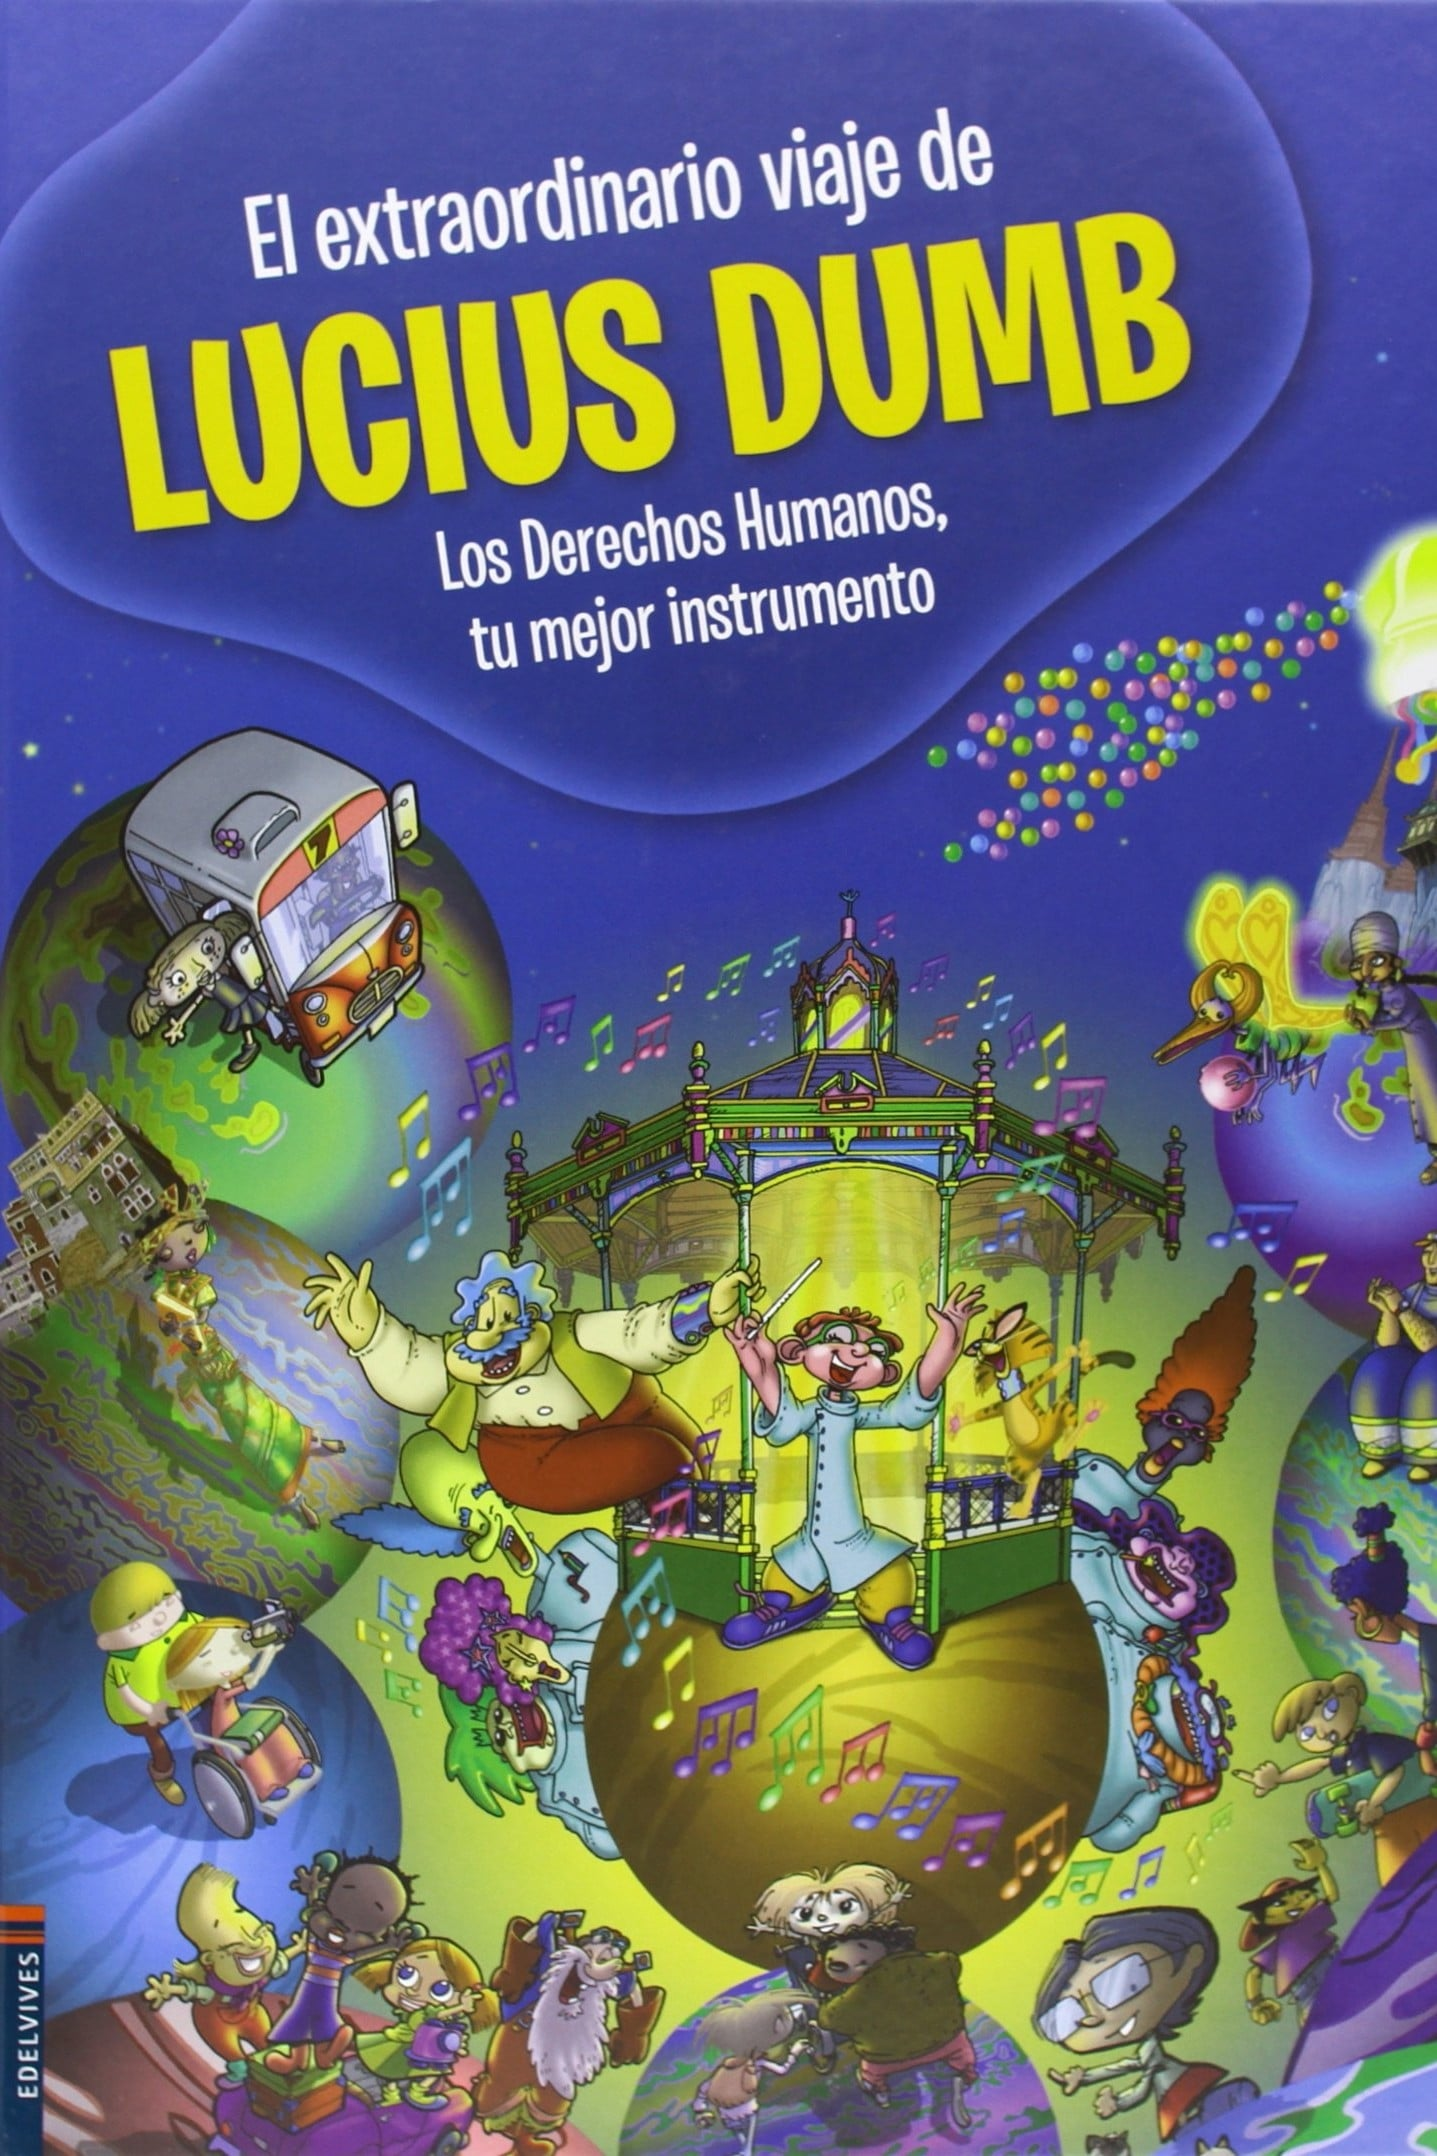 The extraordinary journey of Lucius Dumb (2013)